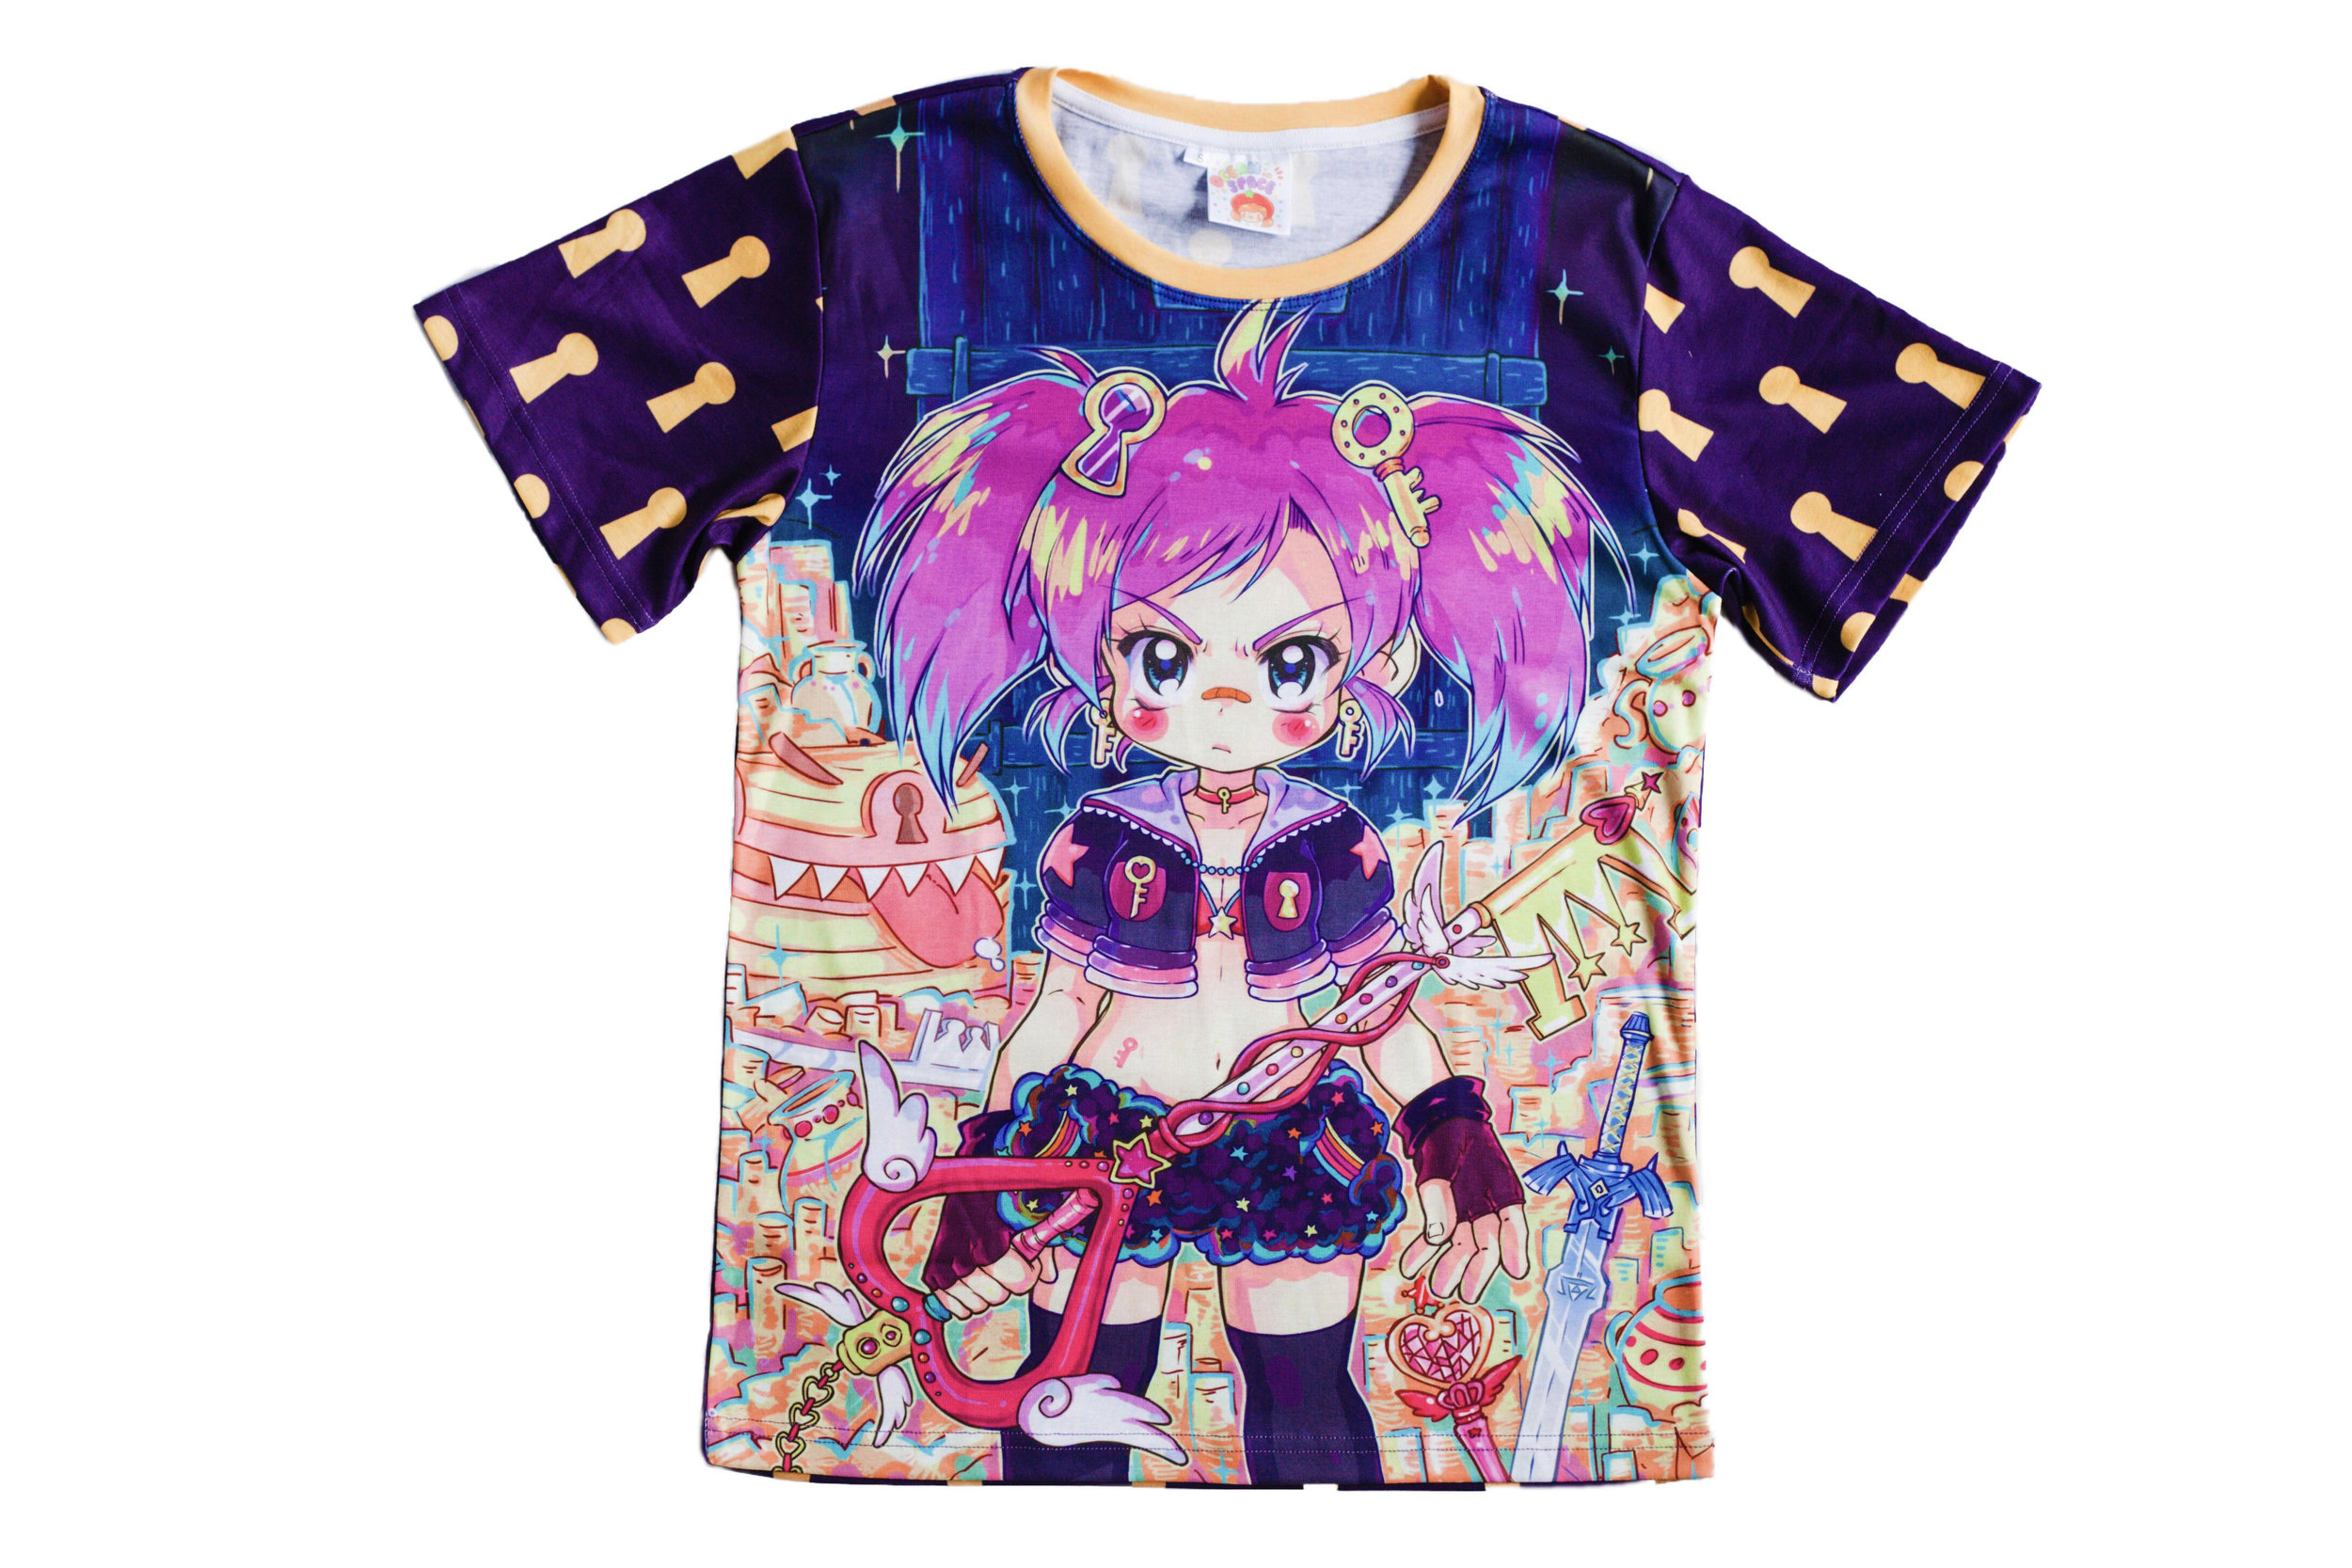 Kawaii_key_tee_front copy 1.jpg